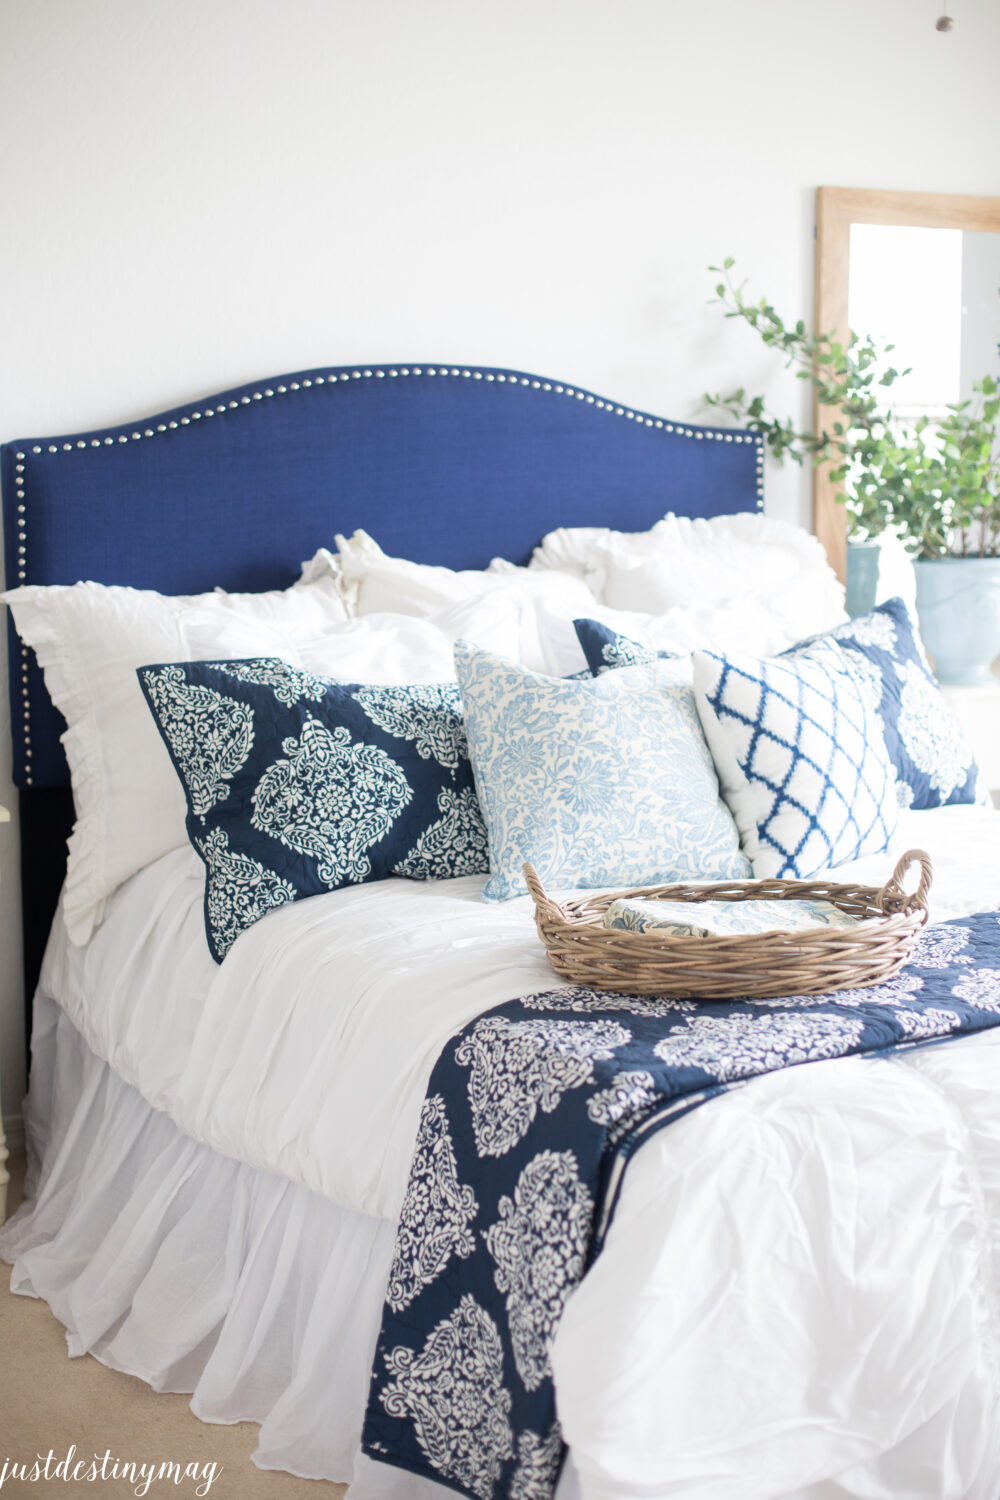 BHG Products from Walmart in the Guest Room